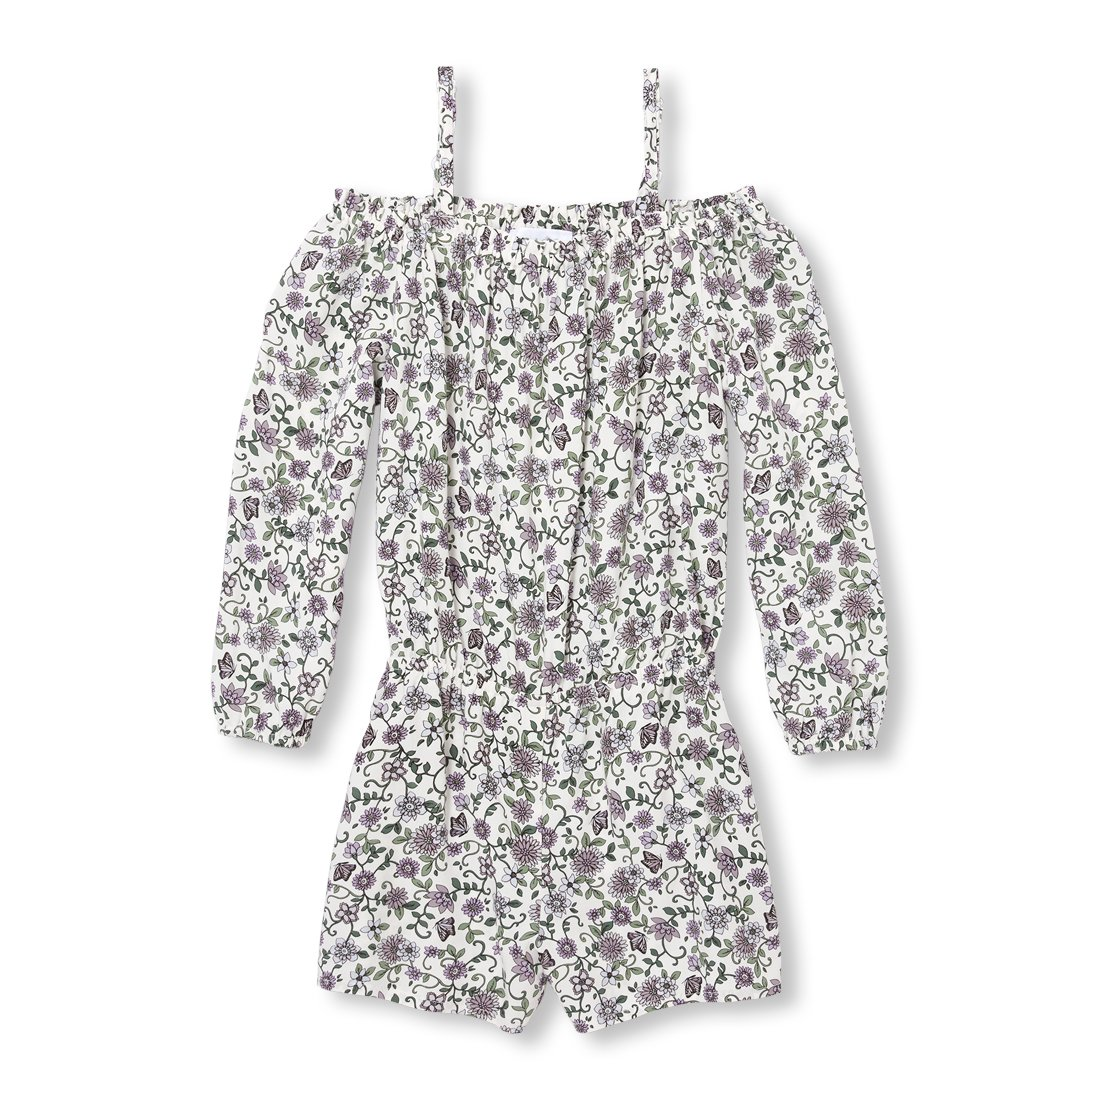 The Children's Place Big Girls' Floral Woven Romper, Bunnys Tail, S (5/6)